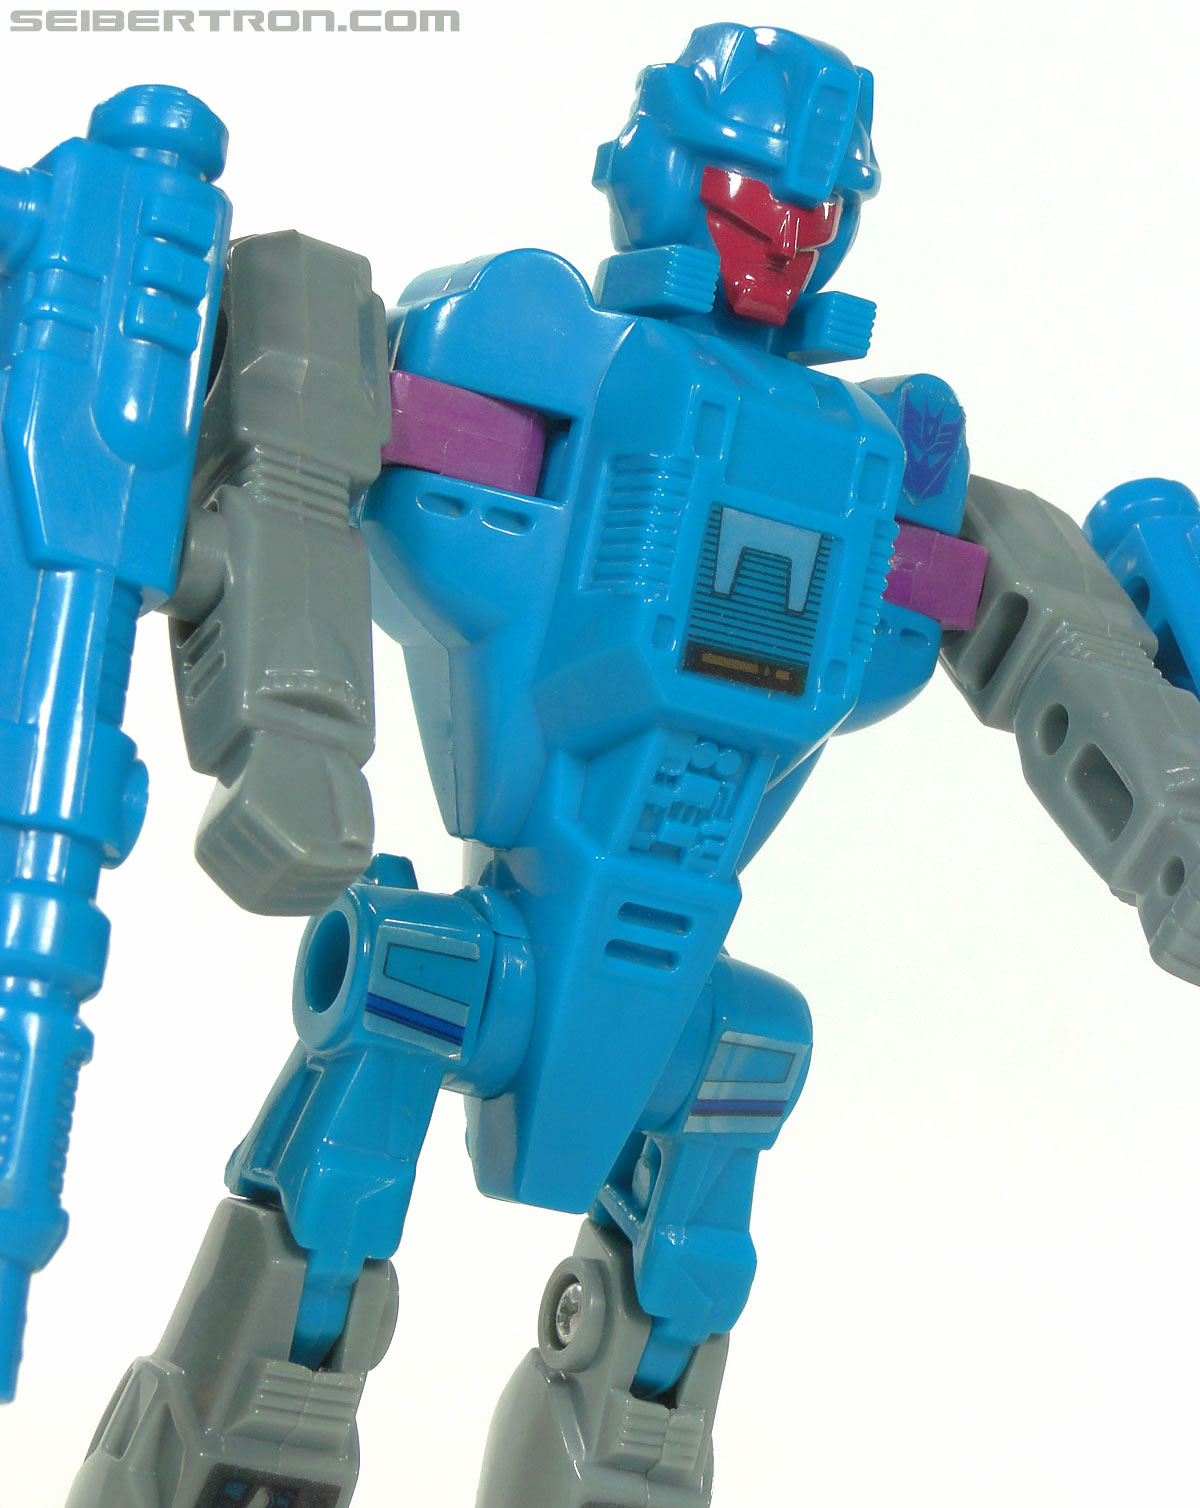 Transformers Super God Masterforce Bomb-Burst (Blood) (Image #139 of 169)